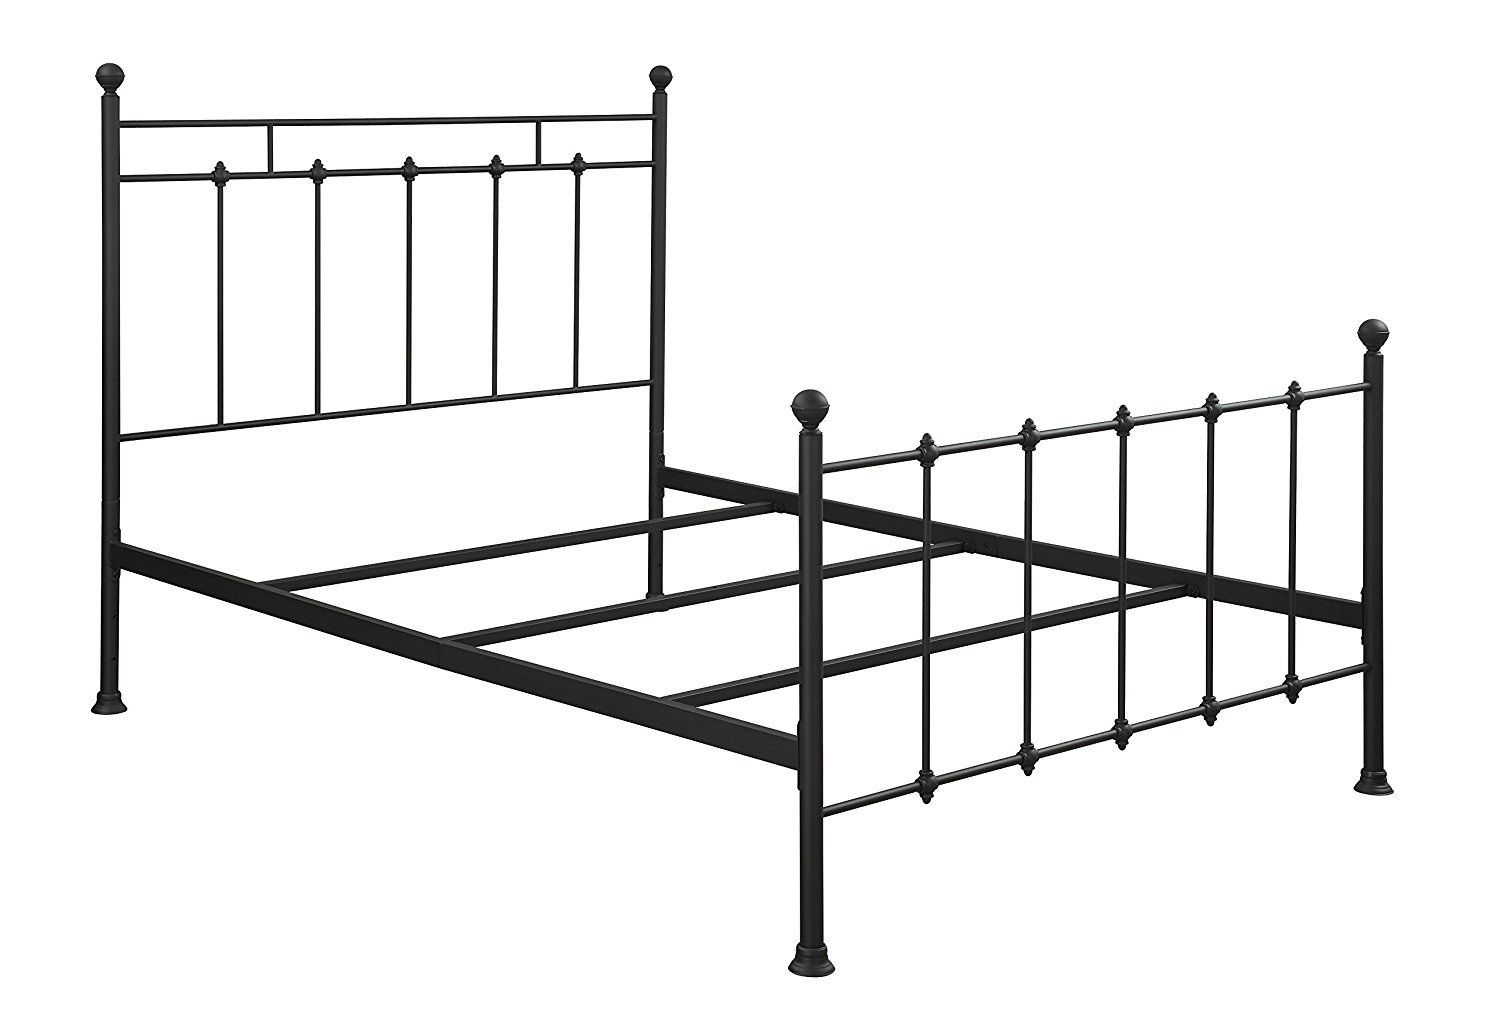 All-In-One Metal Bed Queen Size, Black Finished, Side Rails, Bedroom Furniture, Headboard and Footboard, Fully Turned Metal Feet, Bundle with Expert Guide ''Happiness, Health and Better Life''